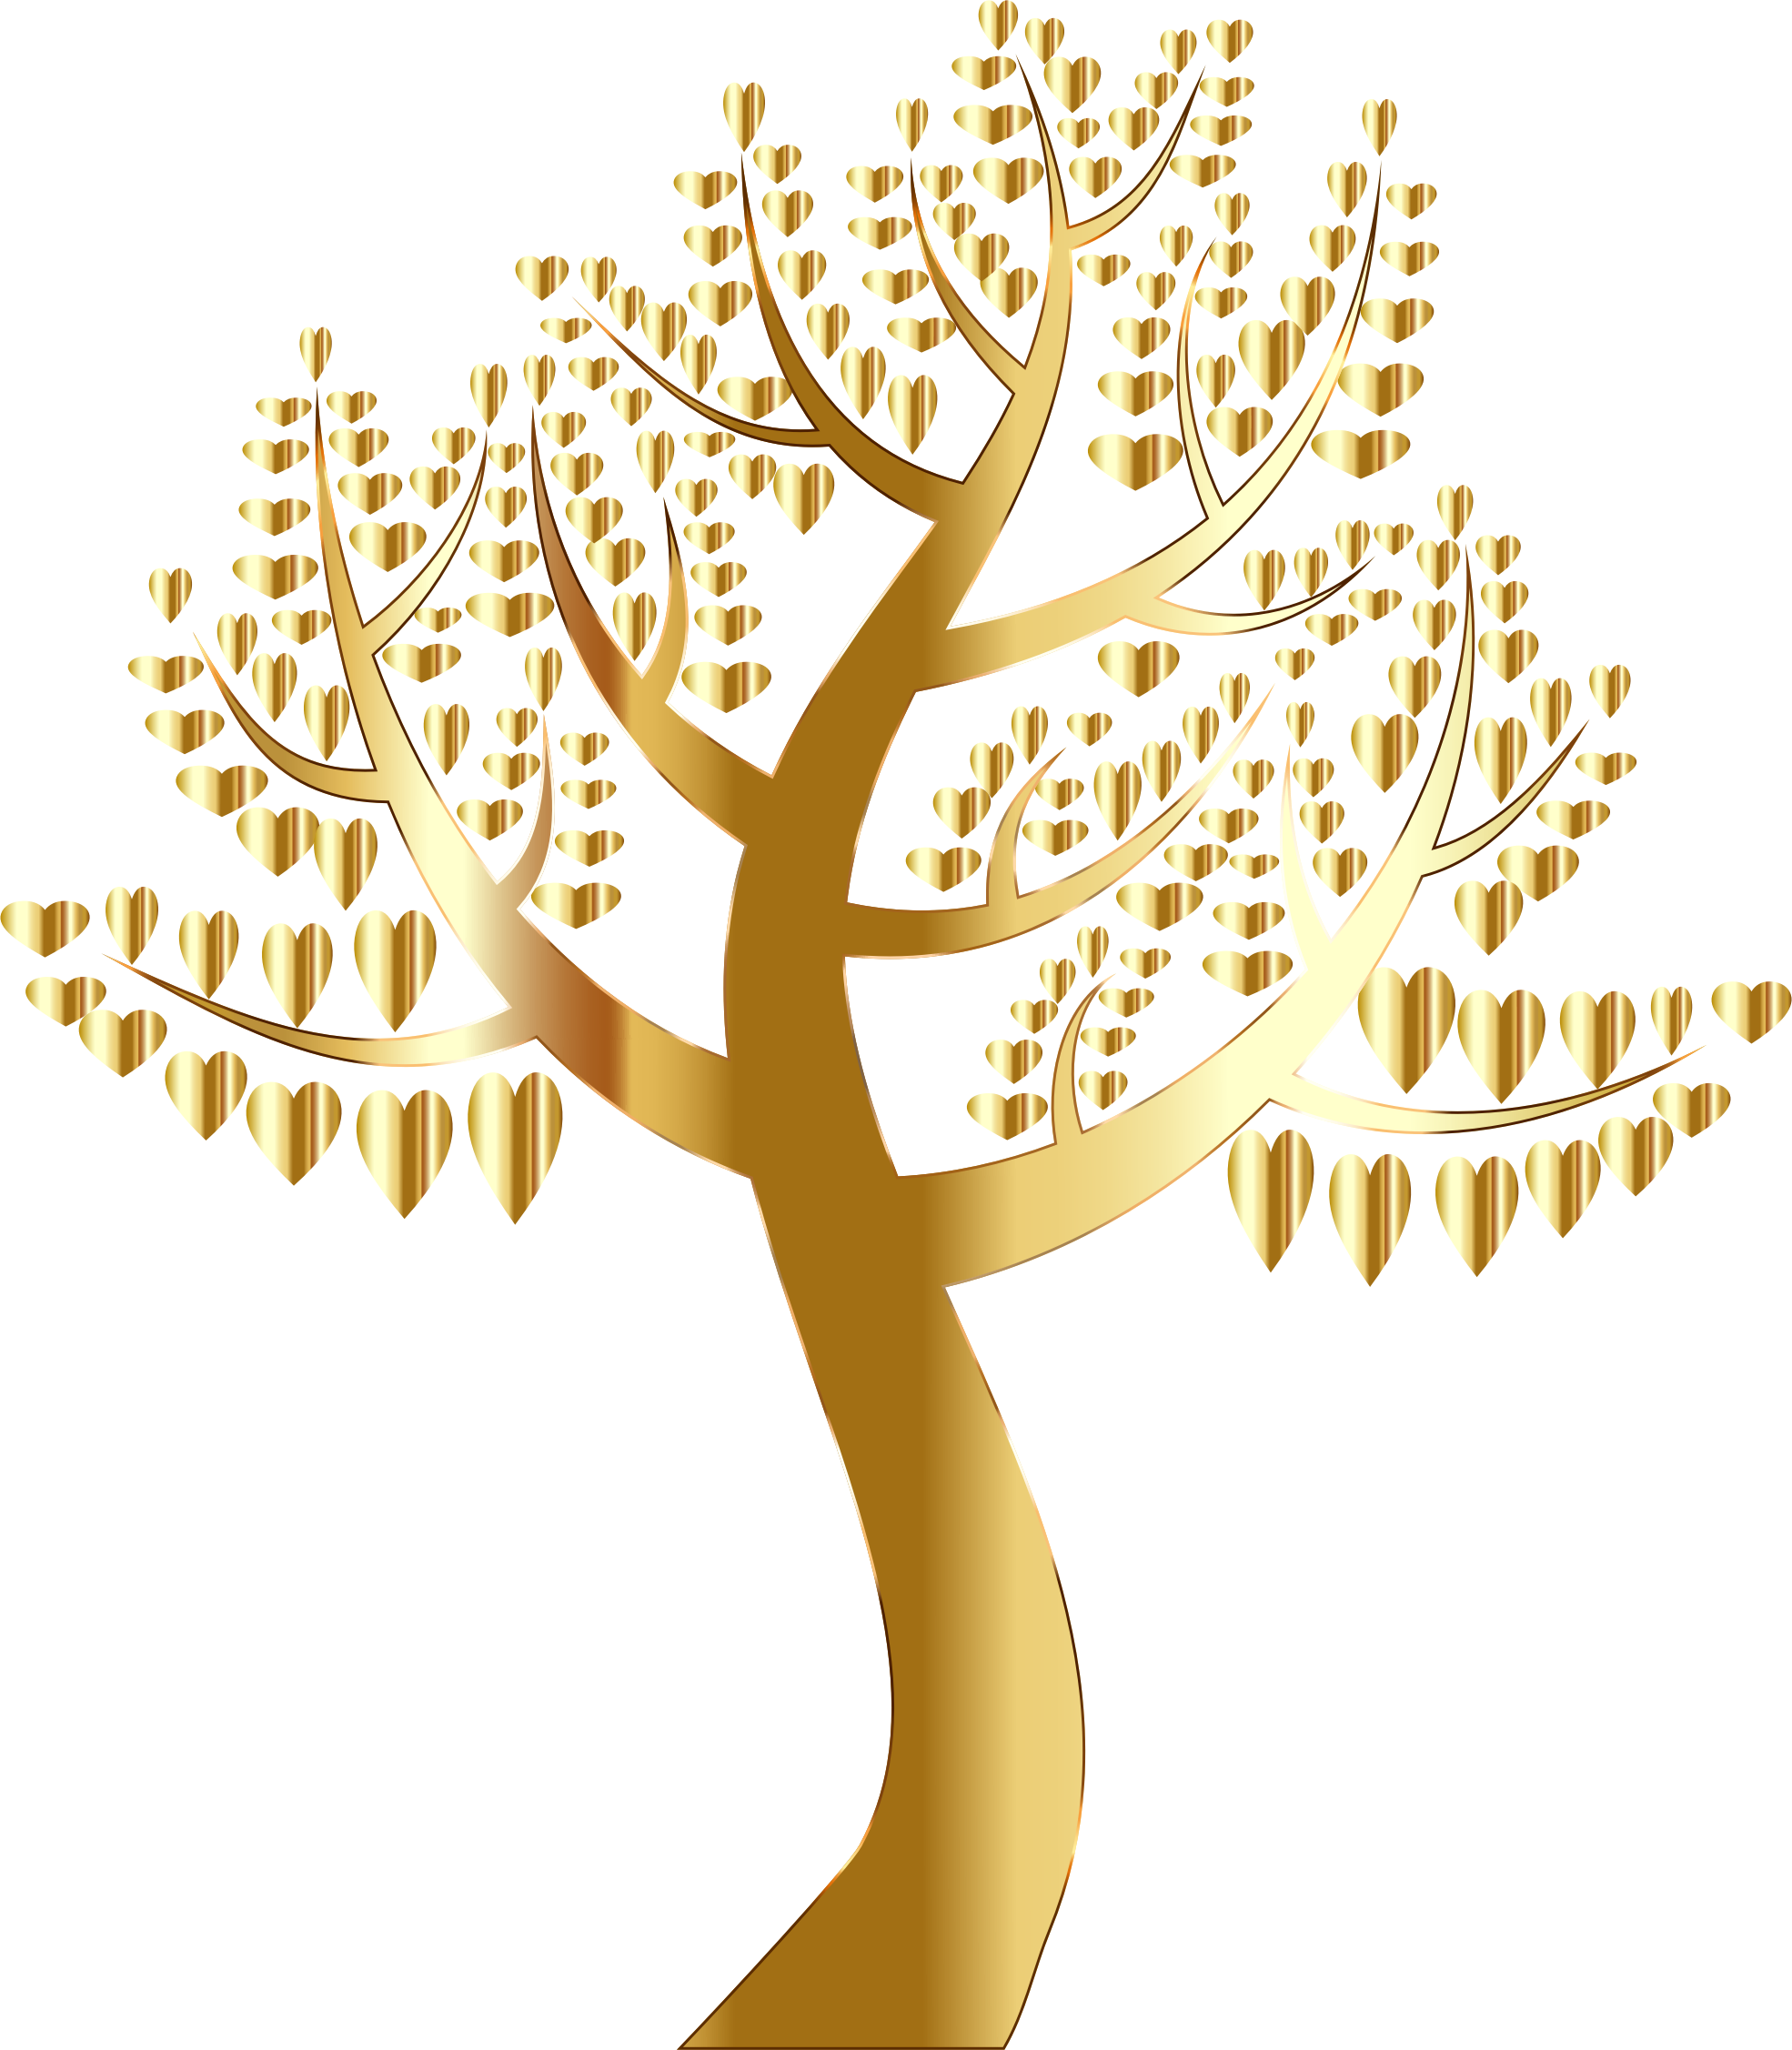 Tree no leaves clipart free Clipart - Simple Hearts Tree 10 No Background free